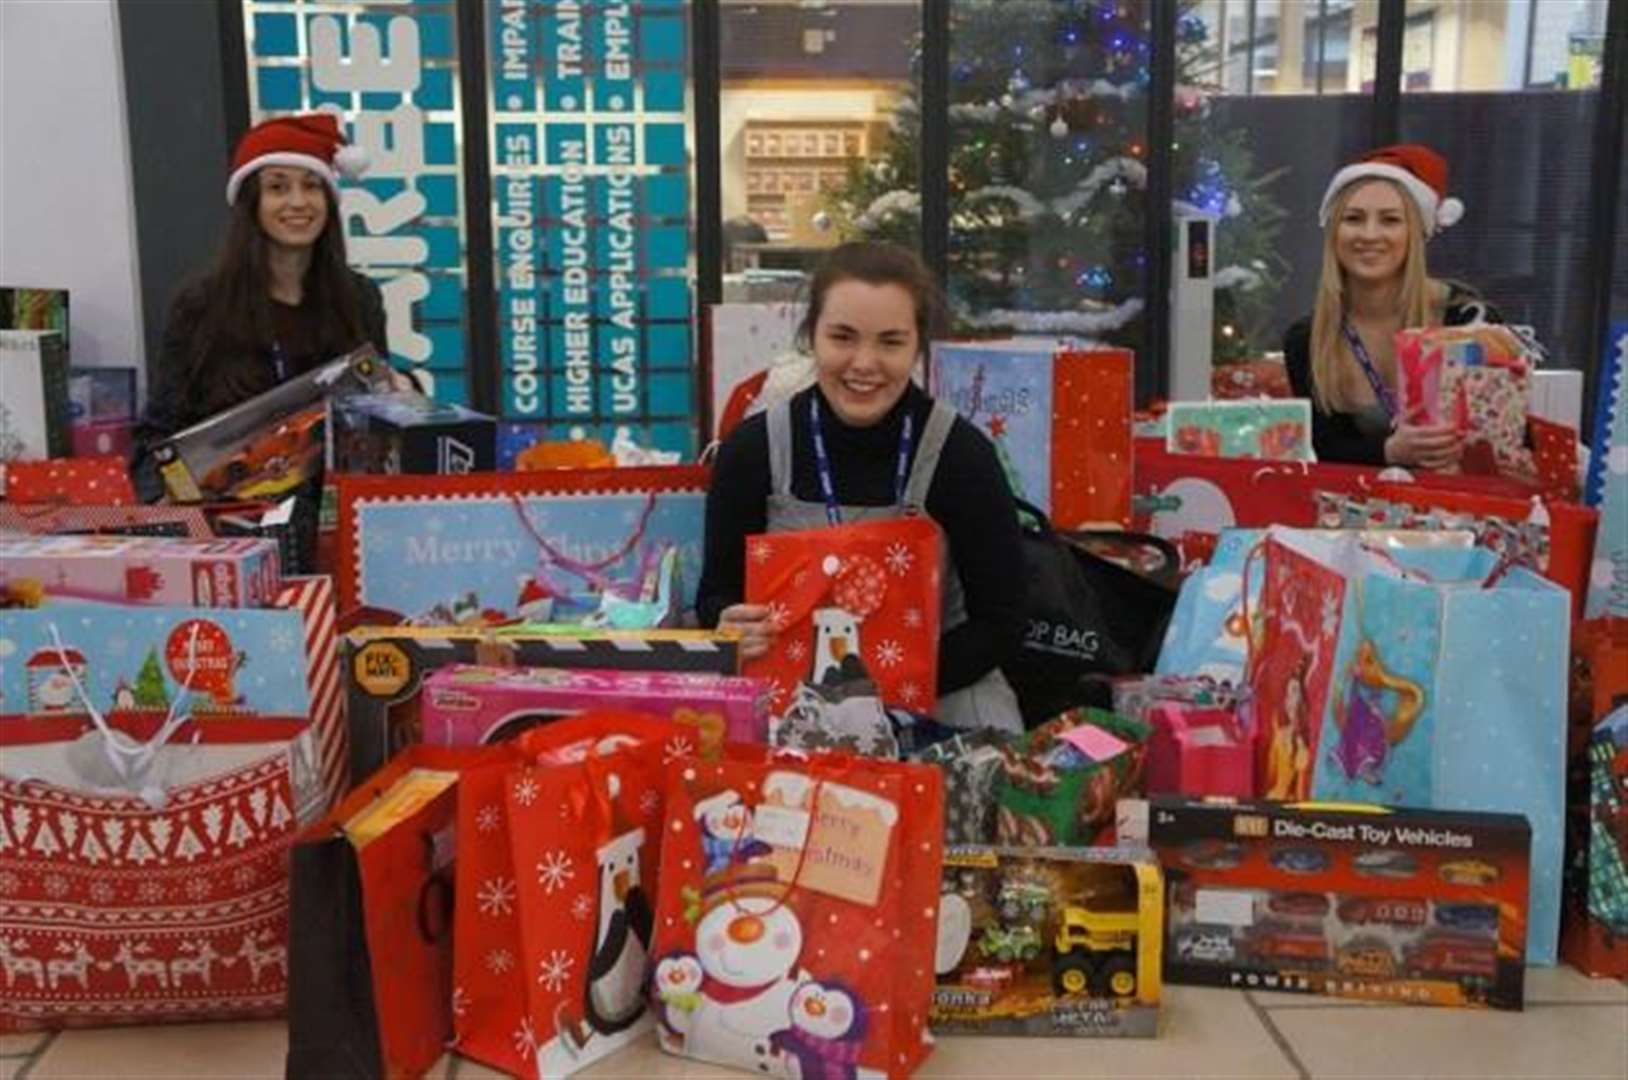 Cambridge Regional College students help make Christmas special for those who need it